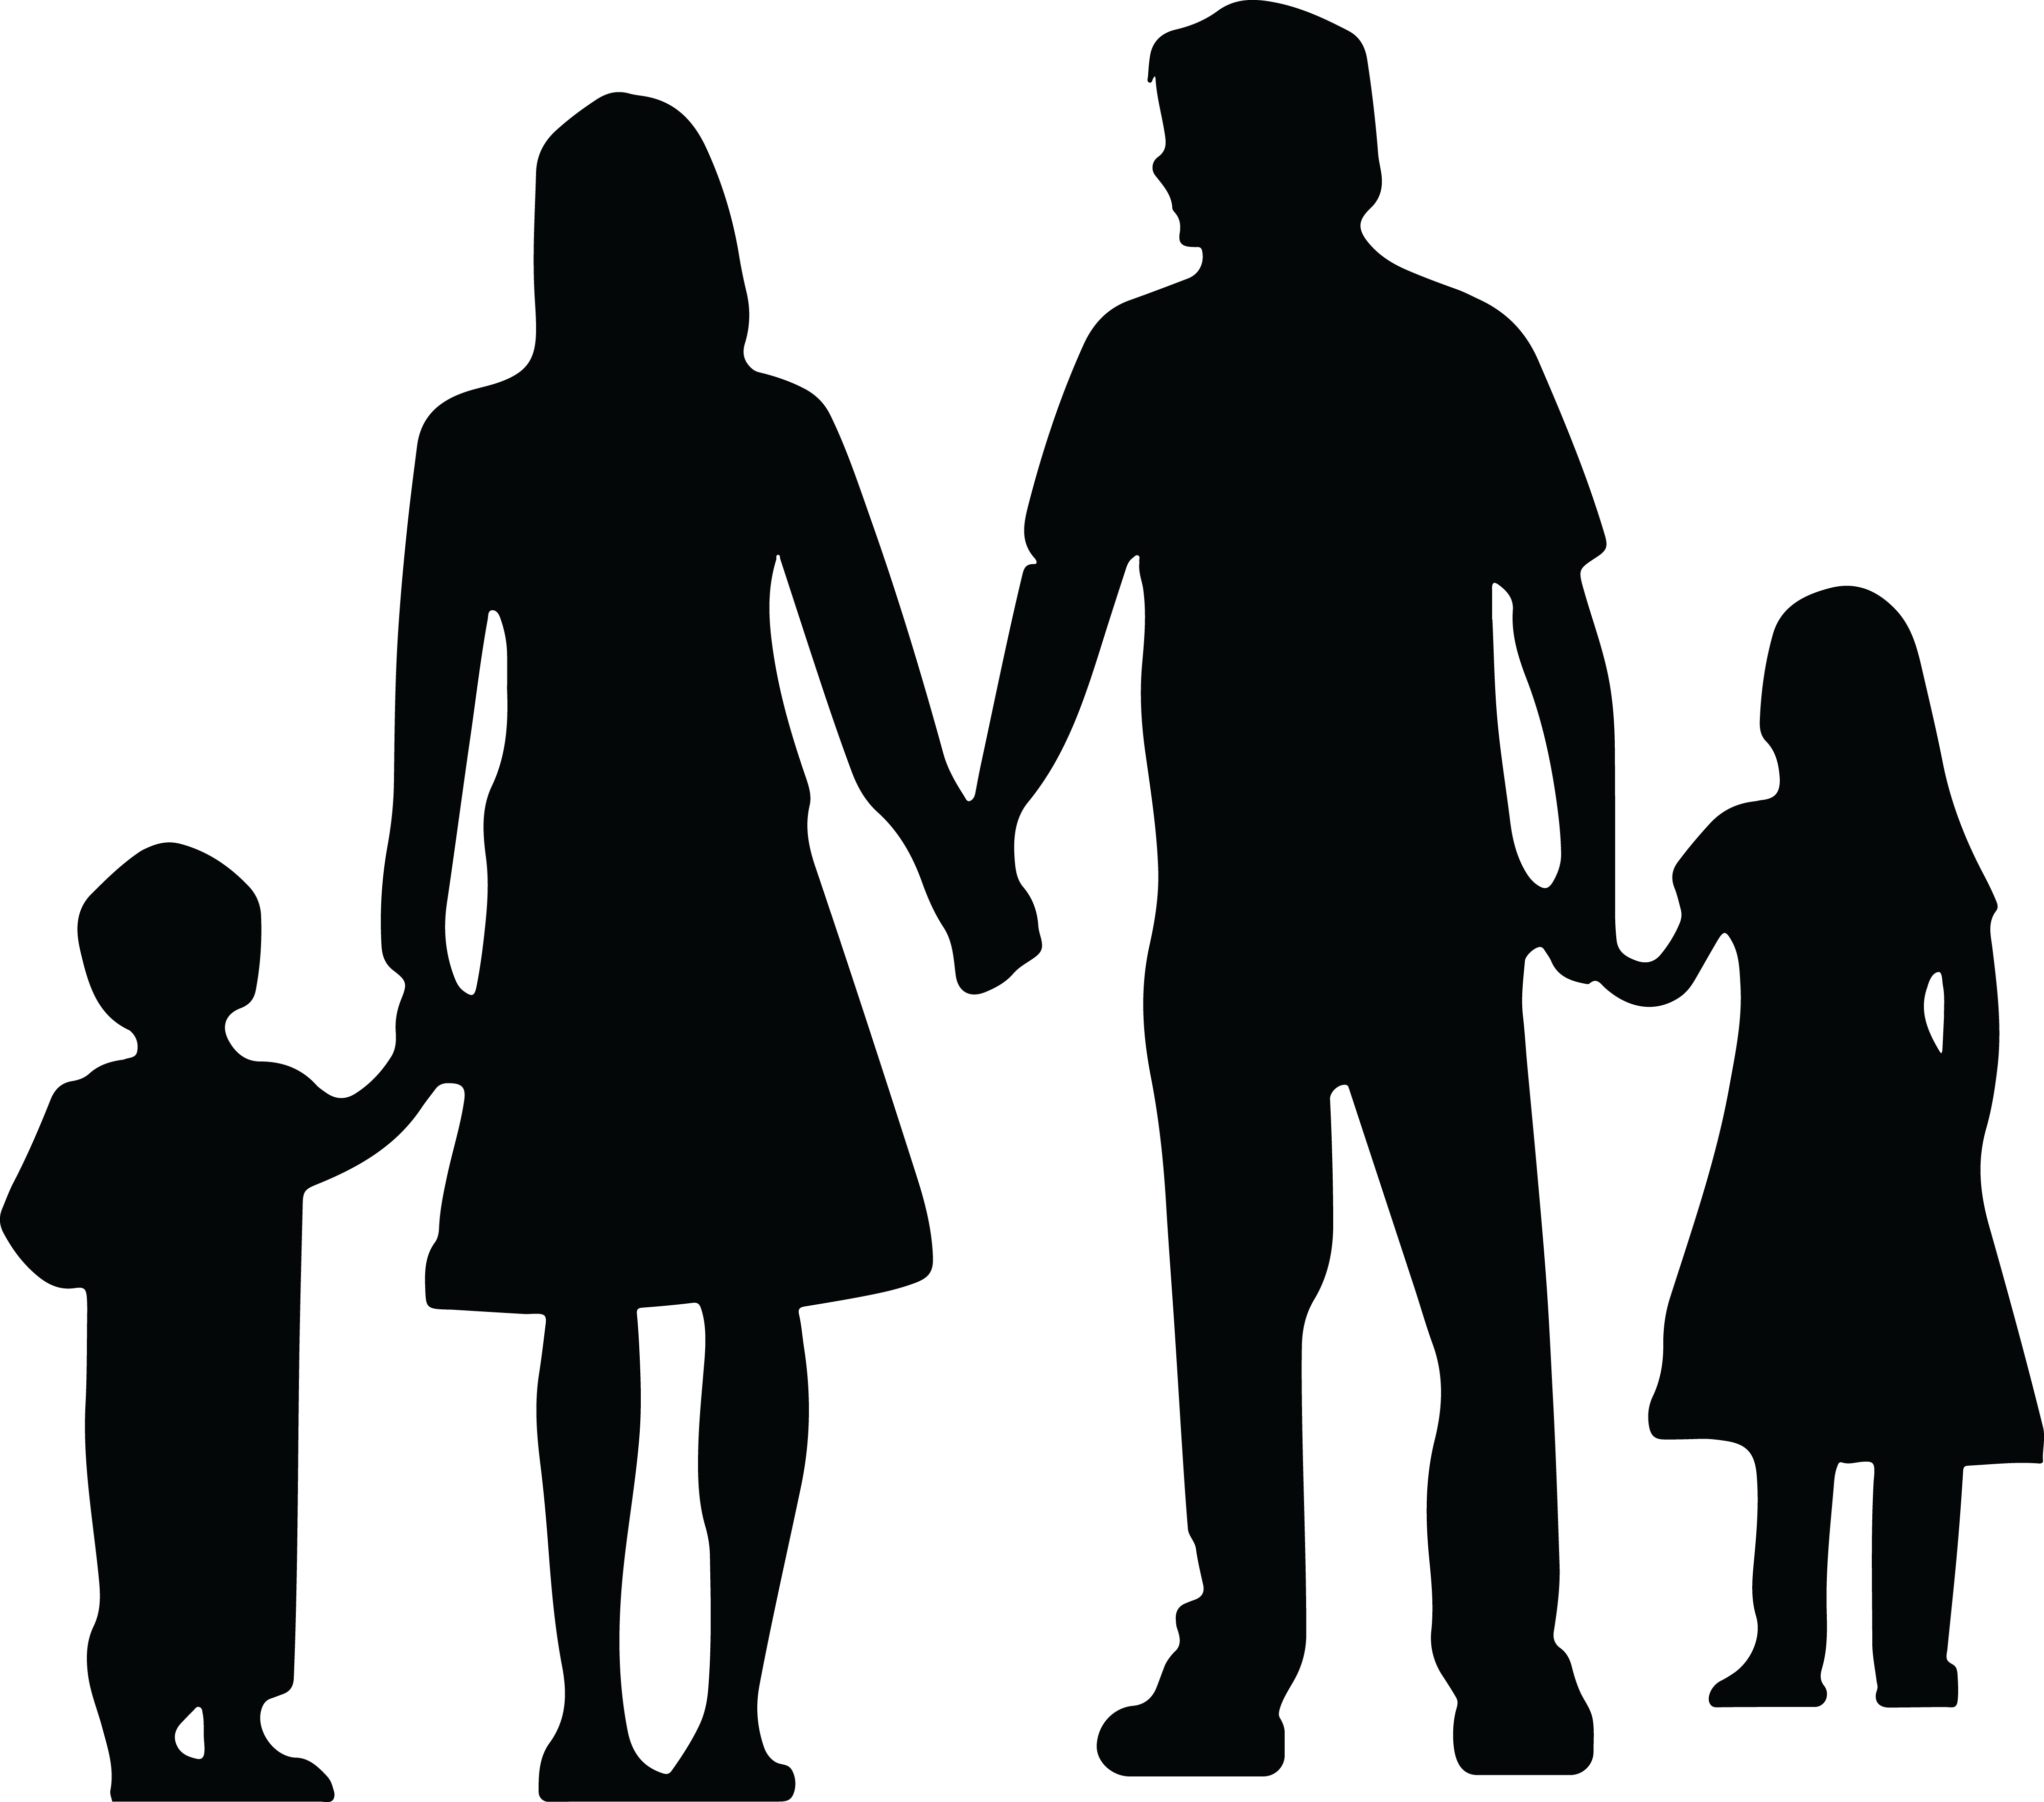 picture royalty free download Silhouette People Holding Hands at GetDrawings